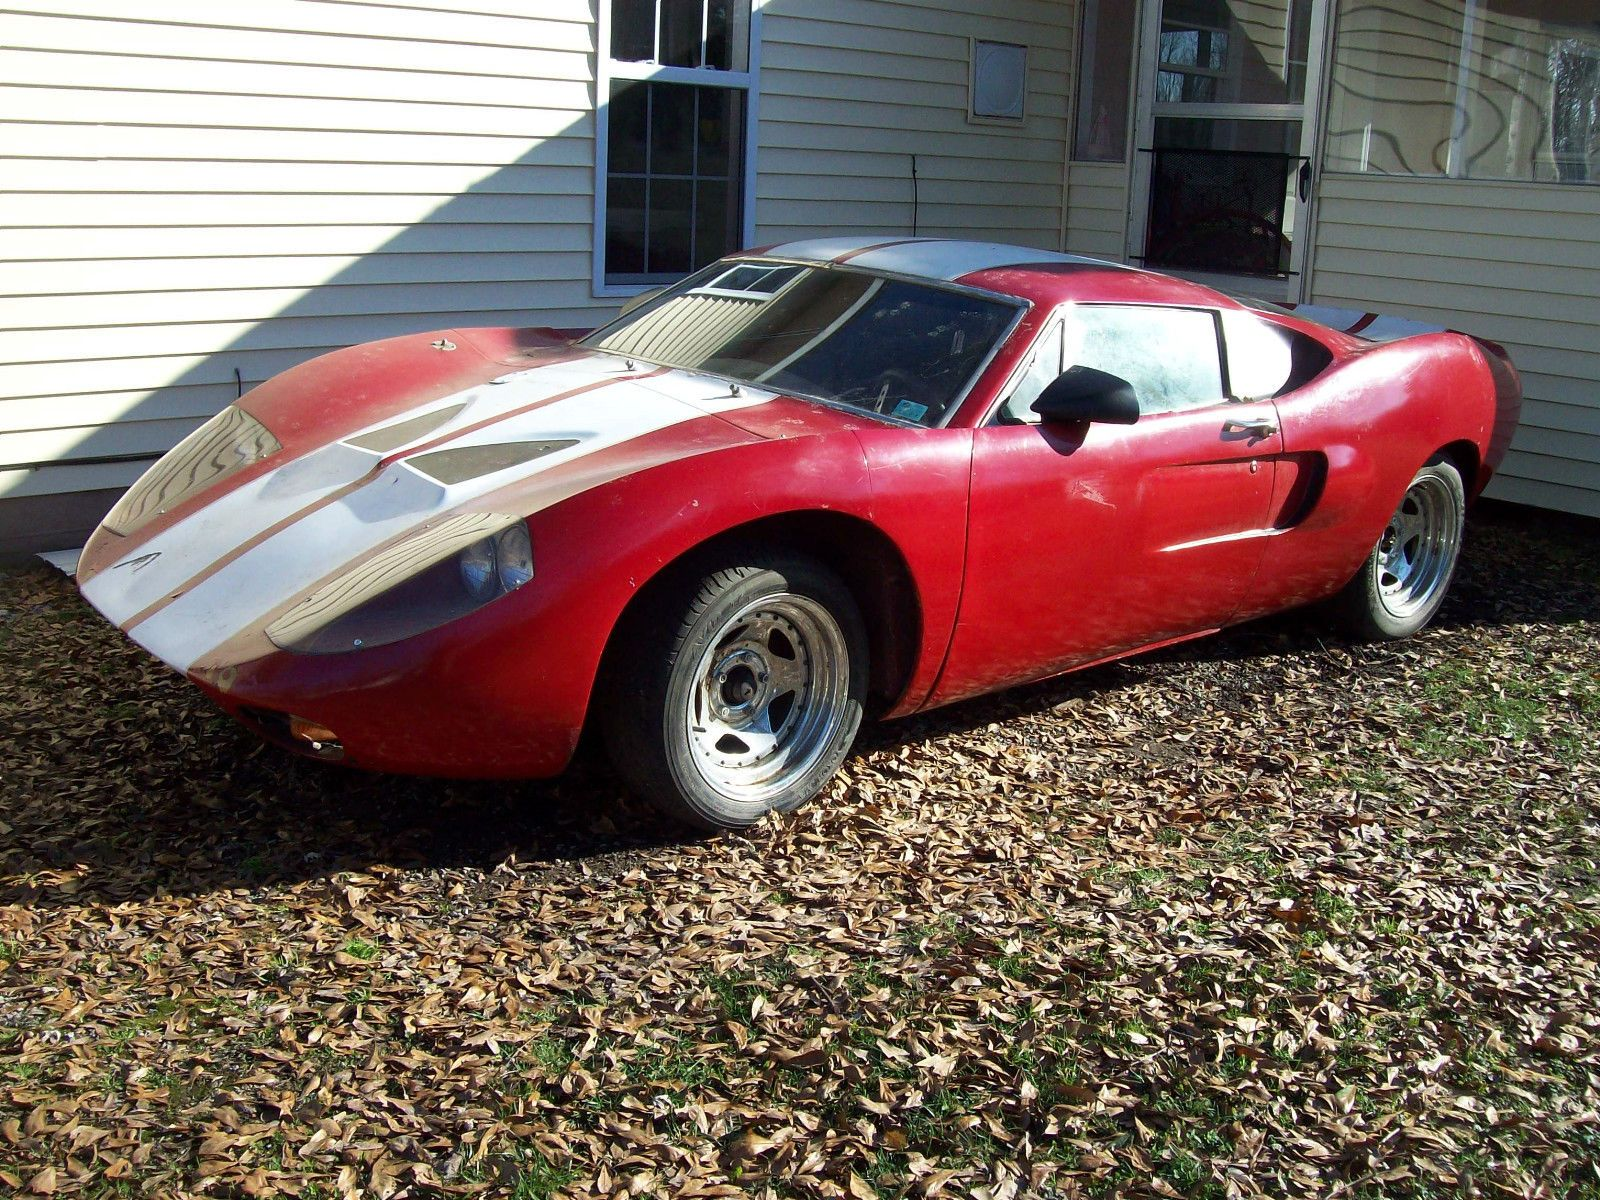 1968 Avenger Gt 12 Fiberfab Replica Corvair 140 Hp Engine Engines For Sale Kit Cars Replica Cars